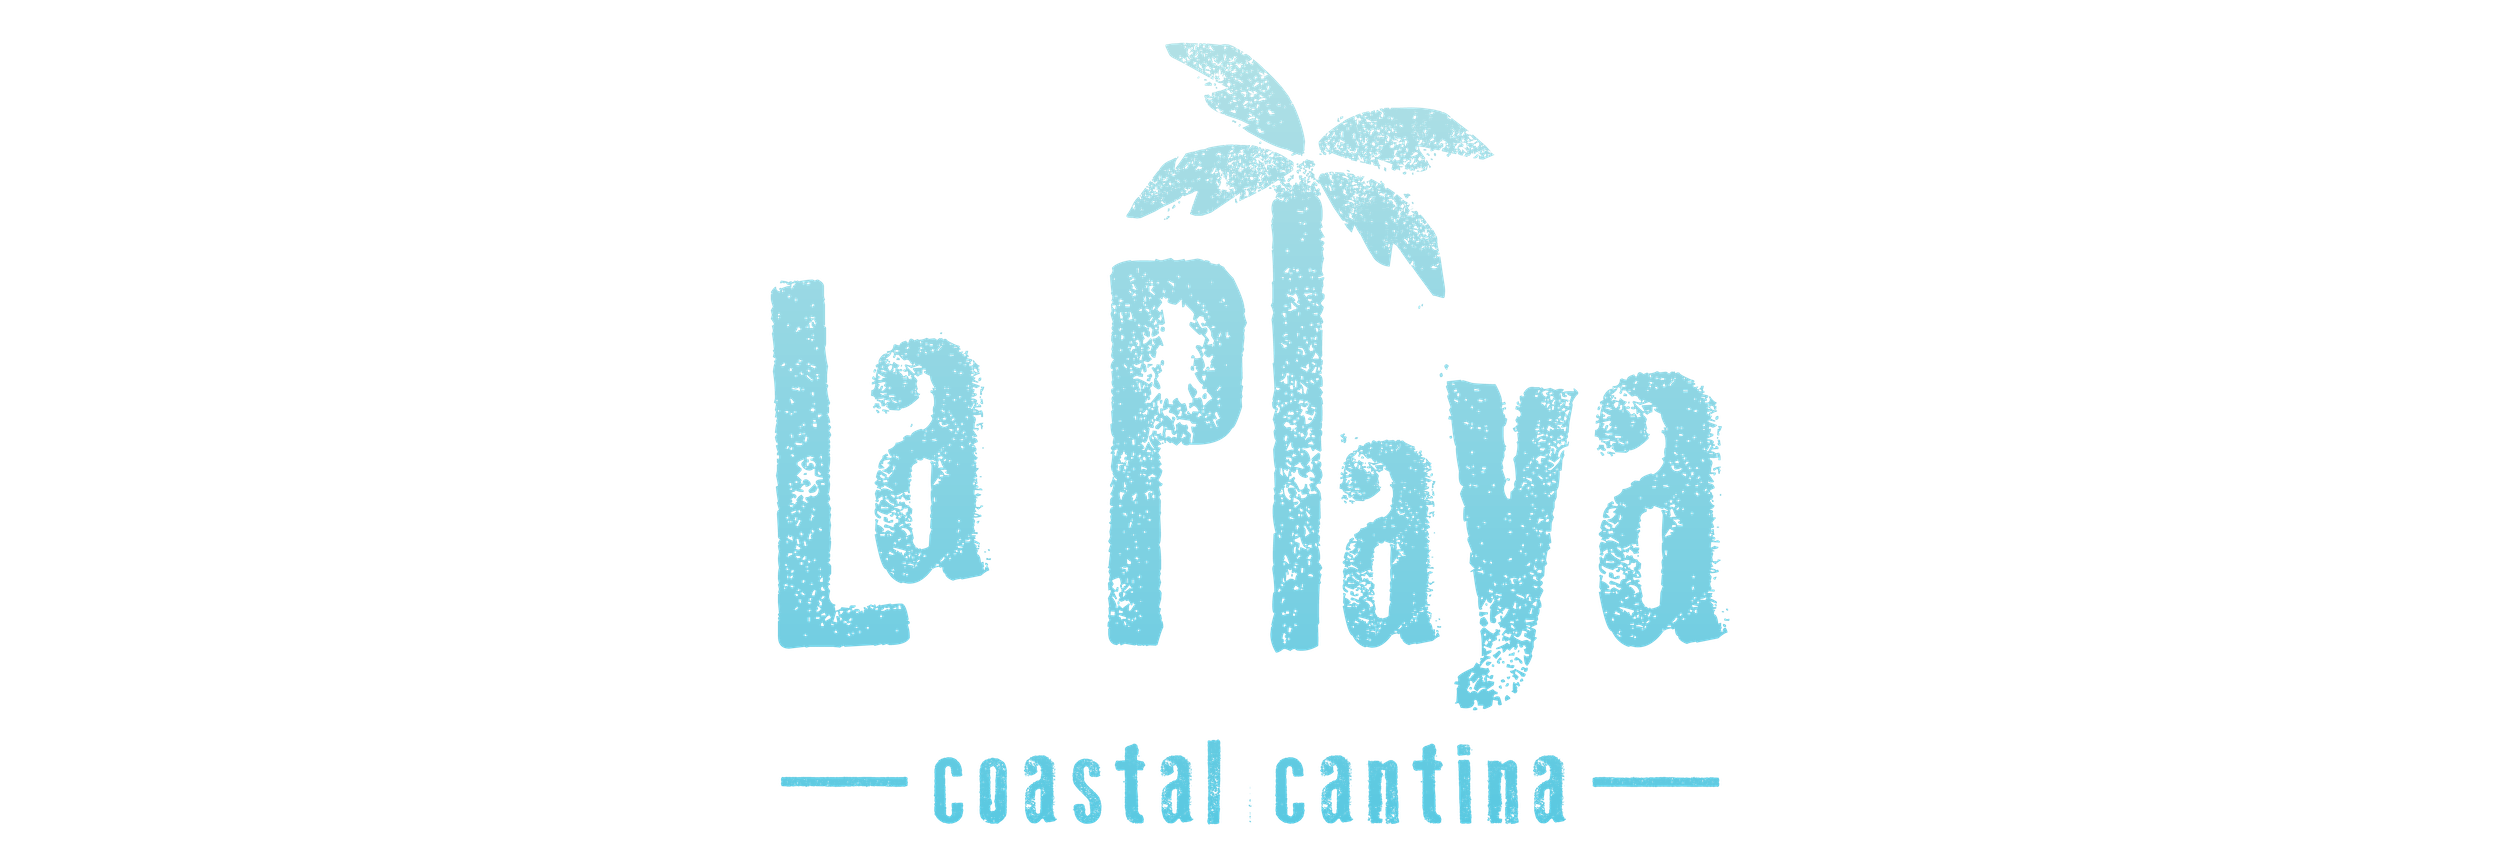 La Playa 30A - Breakfast Lunch Dinner Bar.png